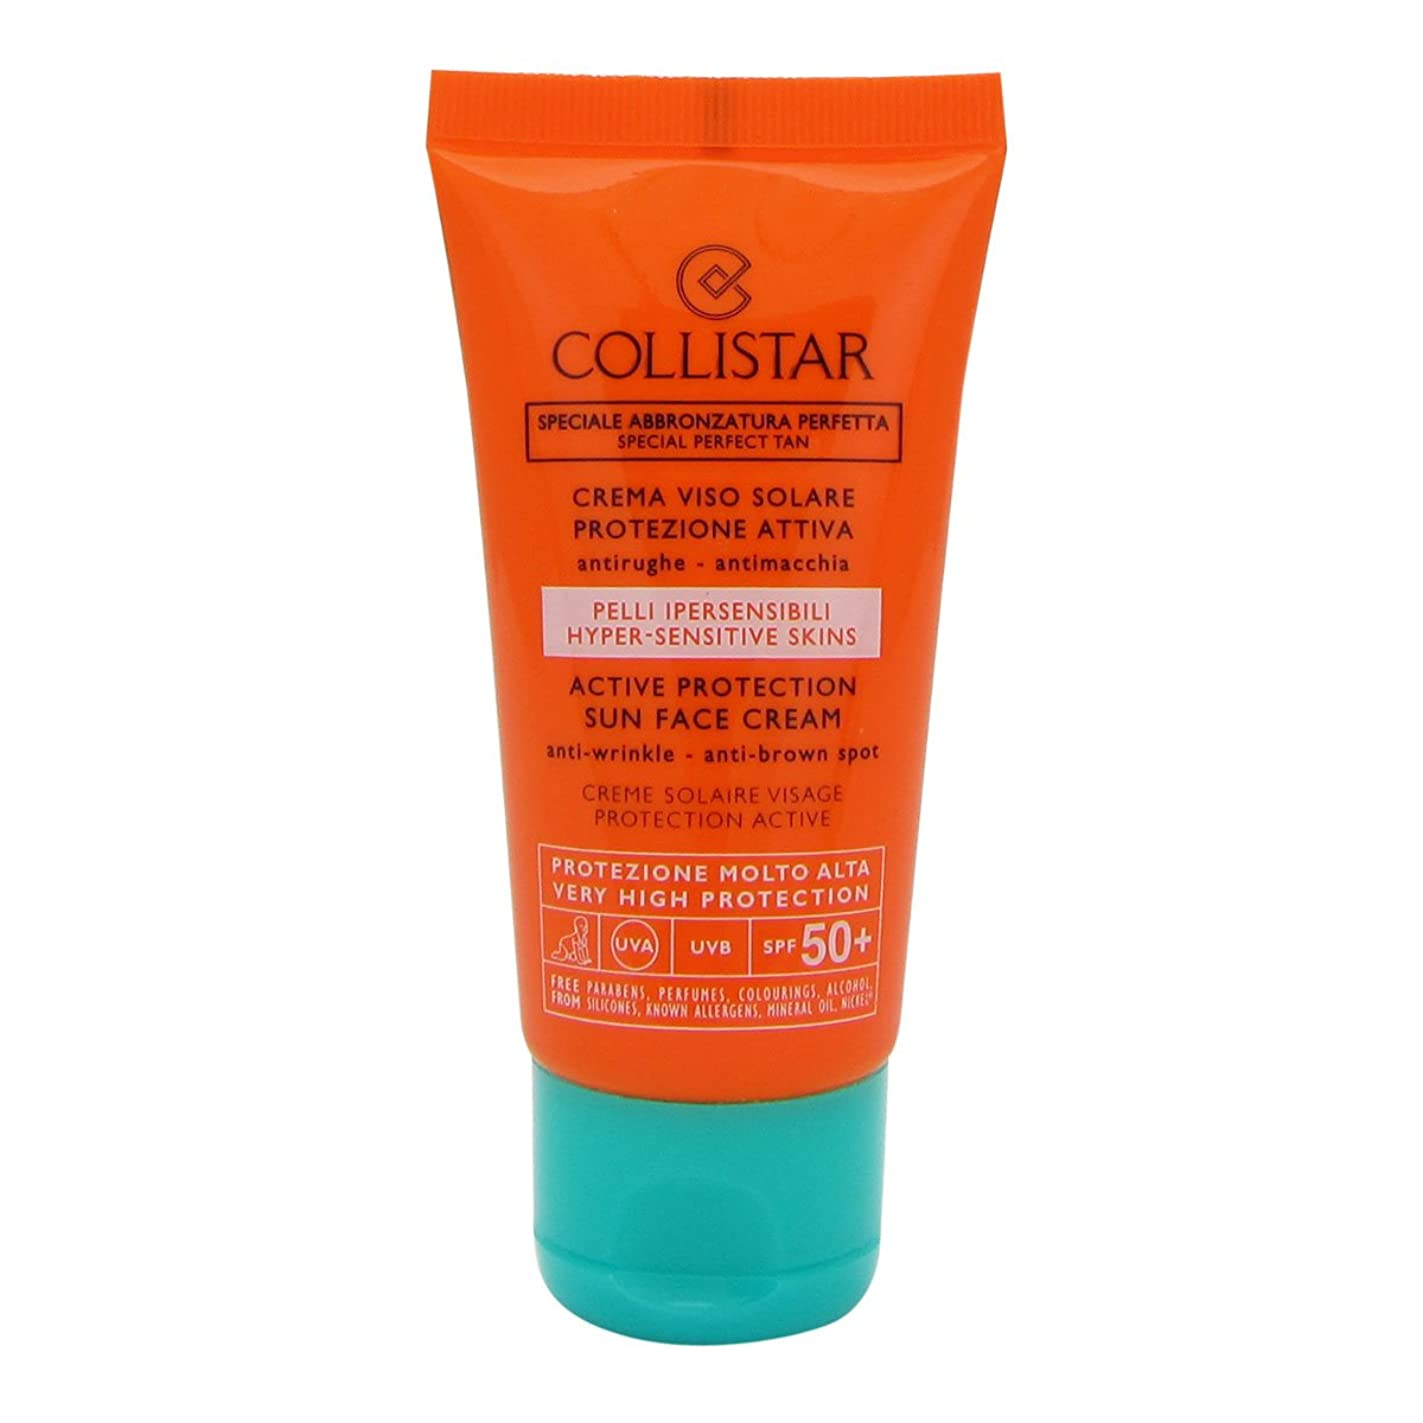 エリート邪悪なトレイルCollistar Special Perfect Tan Active Protection Sun Face Cream Spf50+ 50ml [並行輸入品]